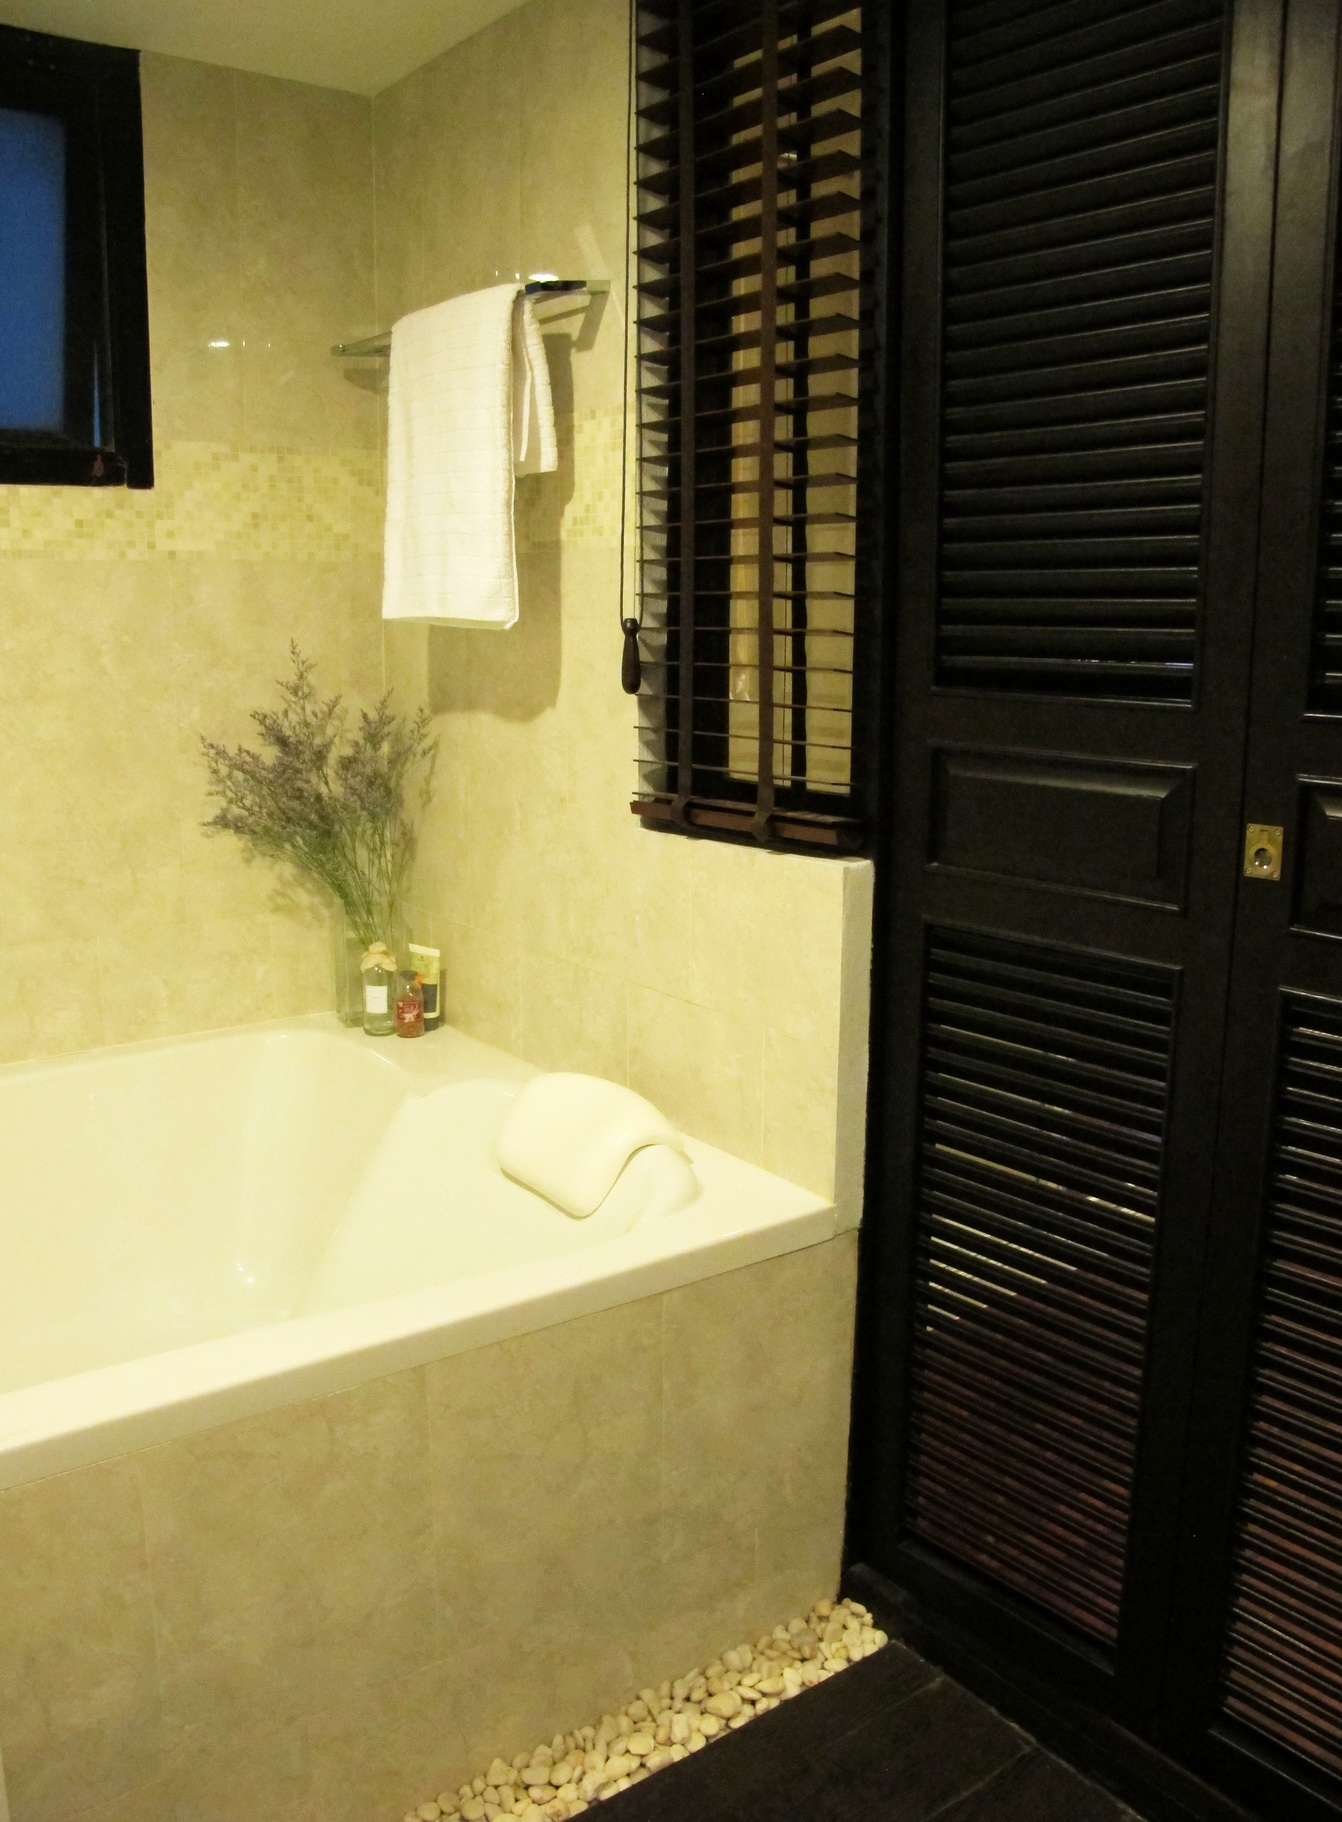 RE/MAX Properties Agency's 2 Bedroom 82.5 Sq.m. for Rent at Baan Chan Condominium 11